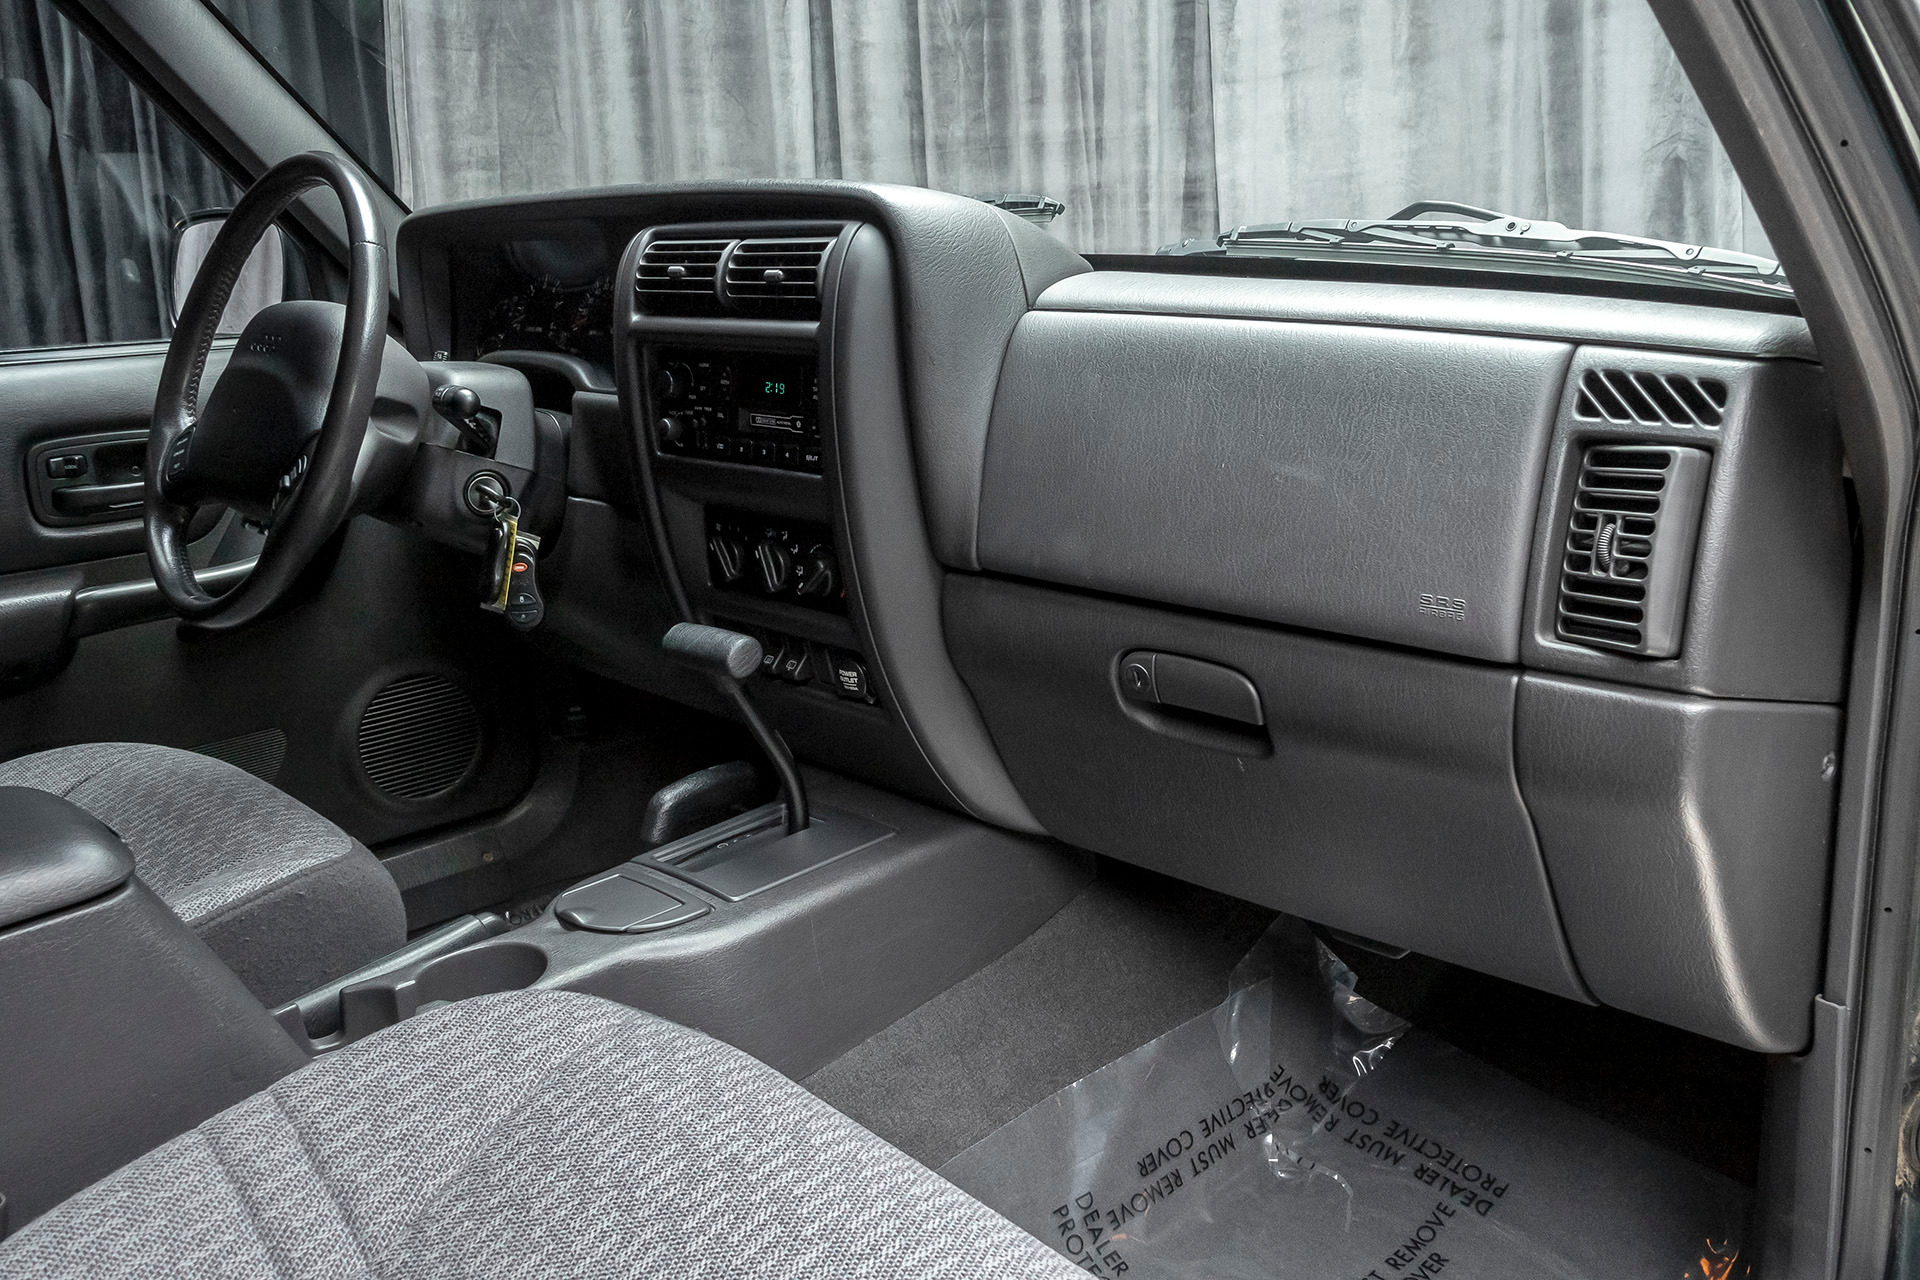 Used 2000 Jeep Cherokee Sport 4x4 One Owner 48k Original Miles For Sale Special Pricing Chicago Motor Cars Stock 17527